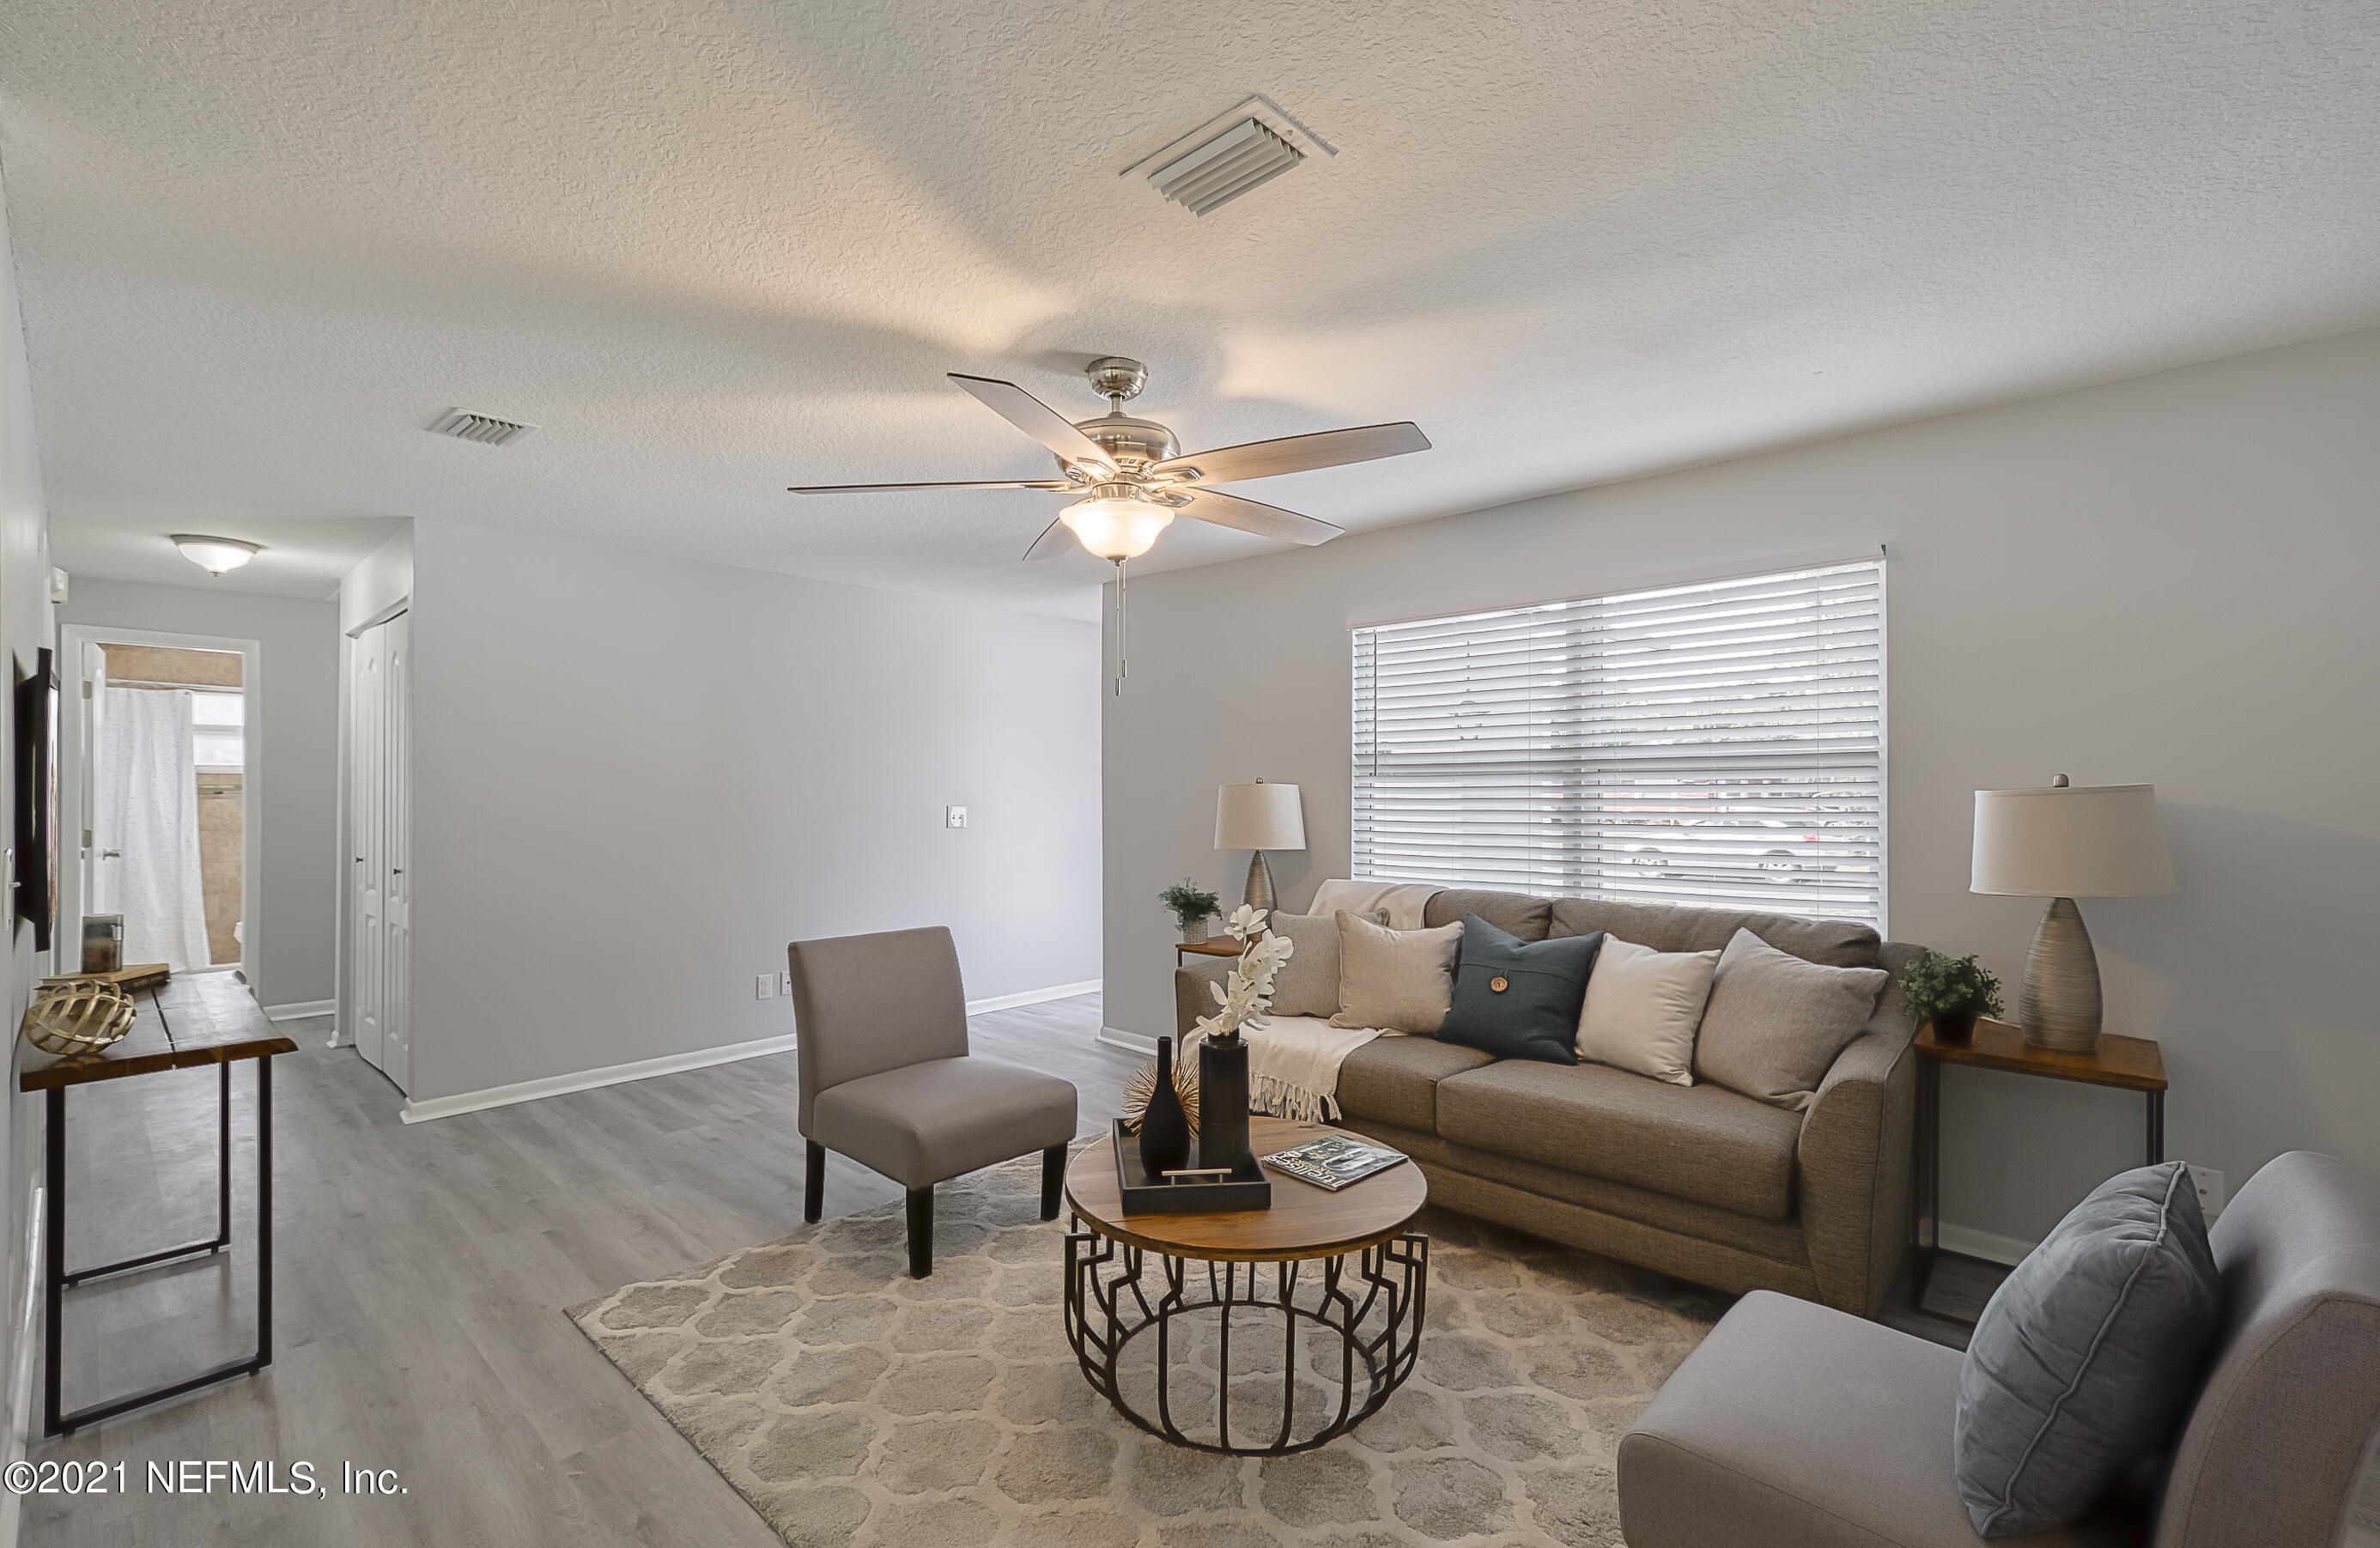 526 CLERMONT, ORANGE PARK, FLORIDA 32073, 3 Bedrooms Bedrooms, ,2 BathroomsBathrooms,Residential,For sale,CLERMONT,1134925